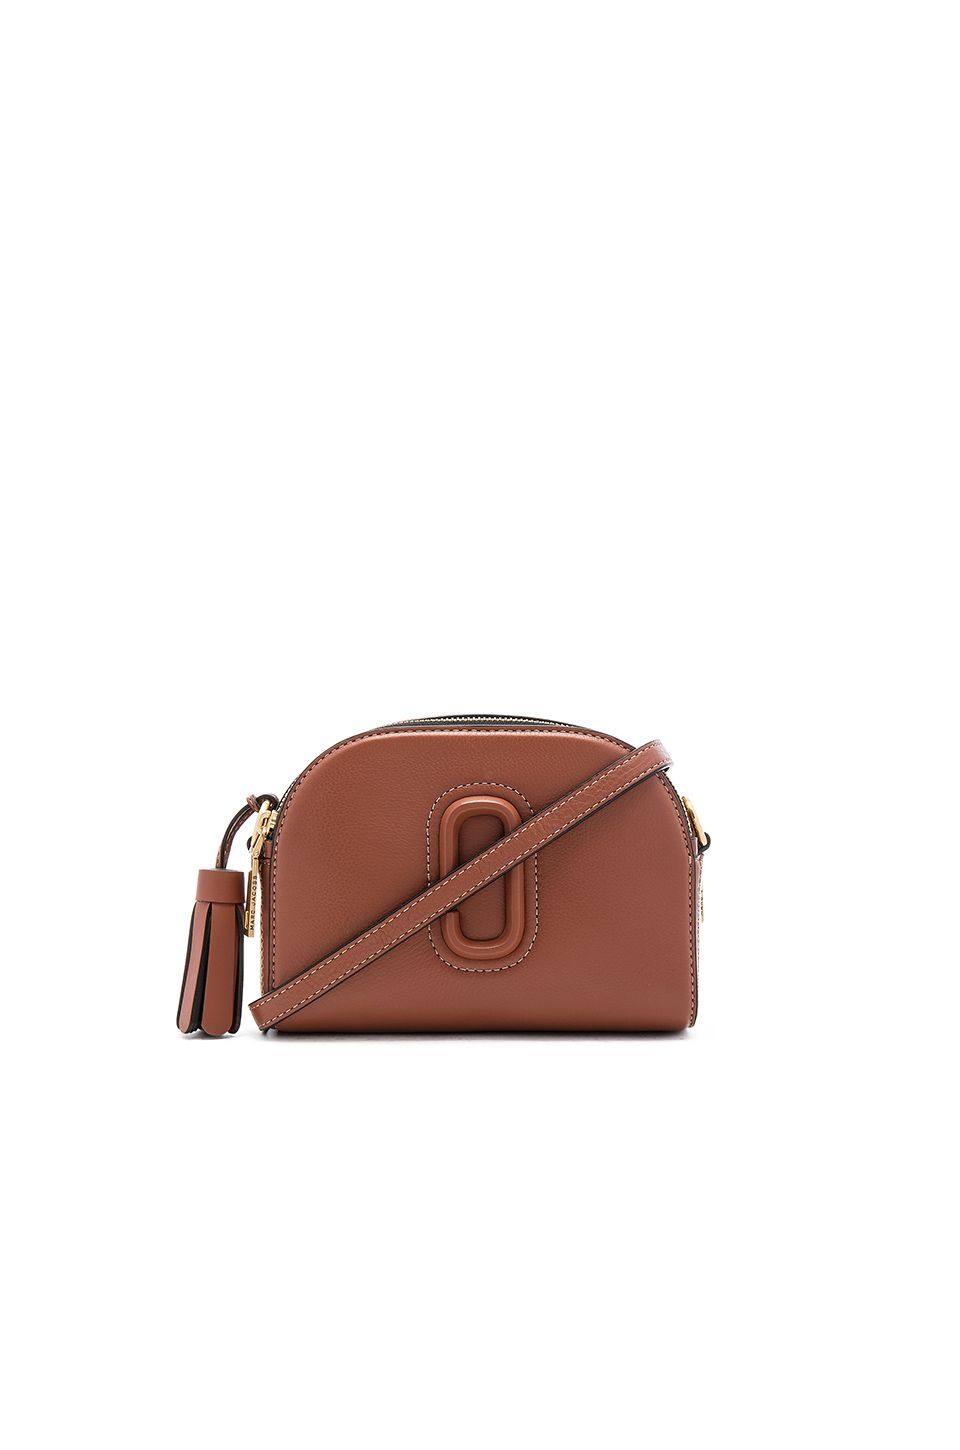 424217b9e Marc Jacobs Shutter Small Camera Bag in Cognac | wish list ...